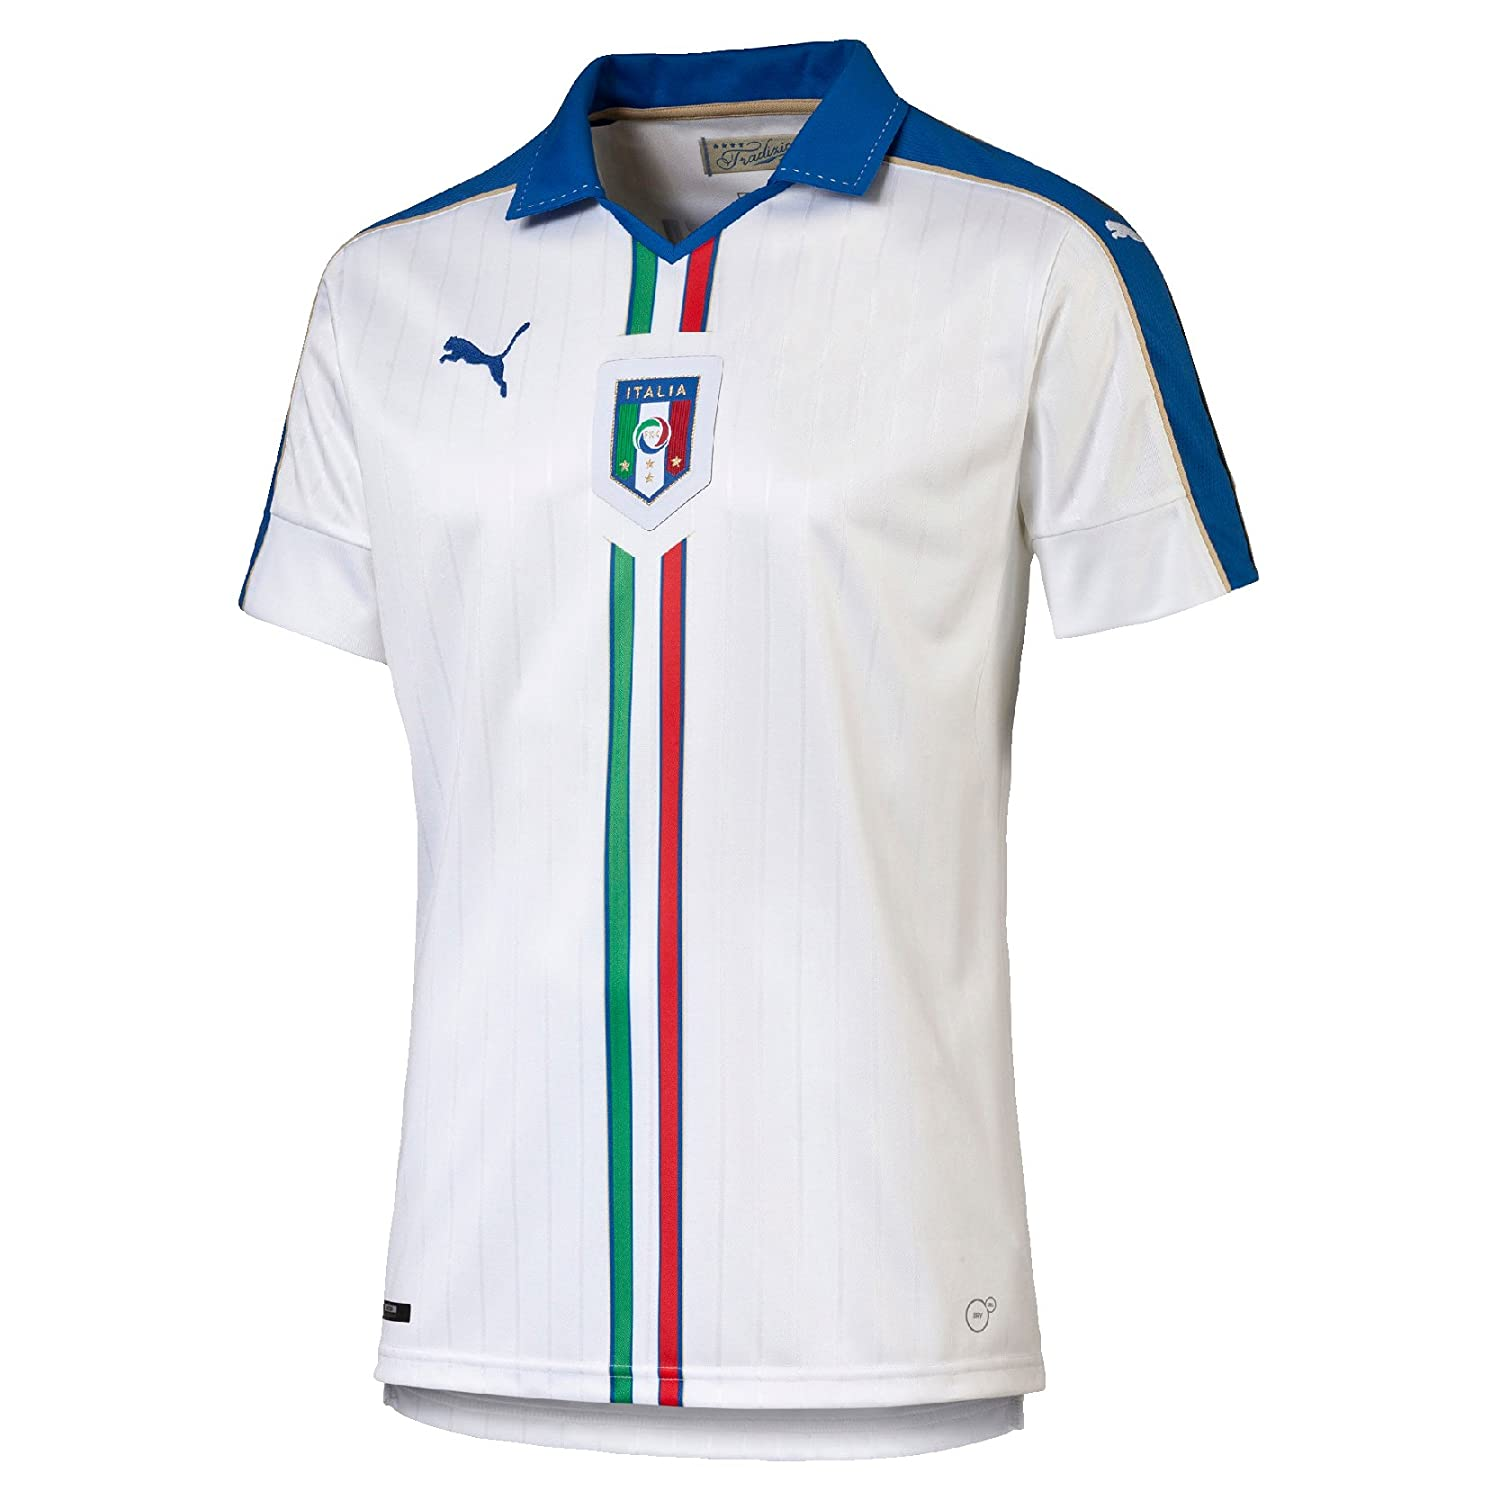 competitive price febb7 e9d0a Puma FIGC Italy Away Replica Jersey